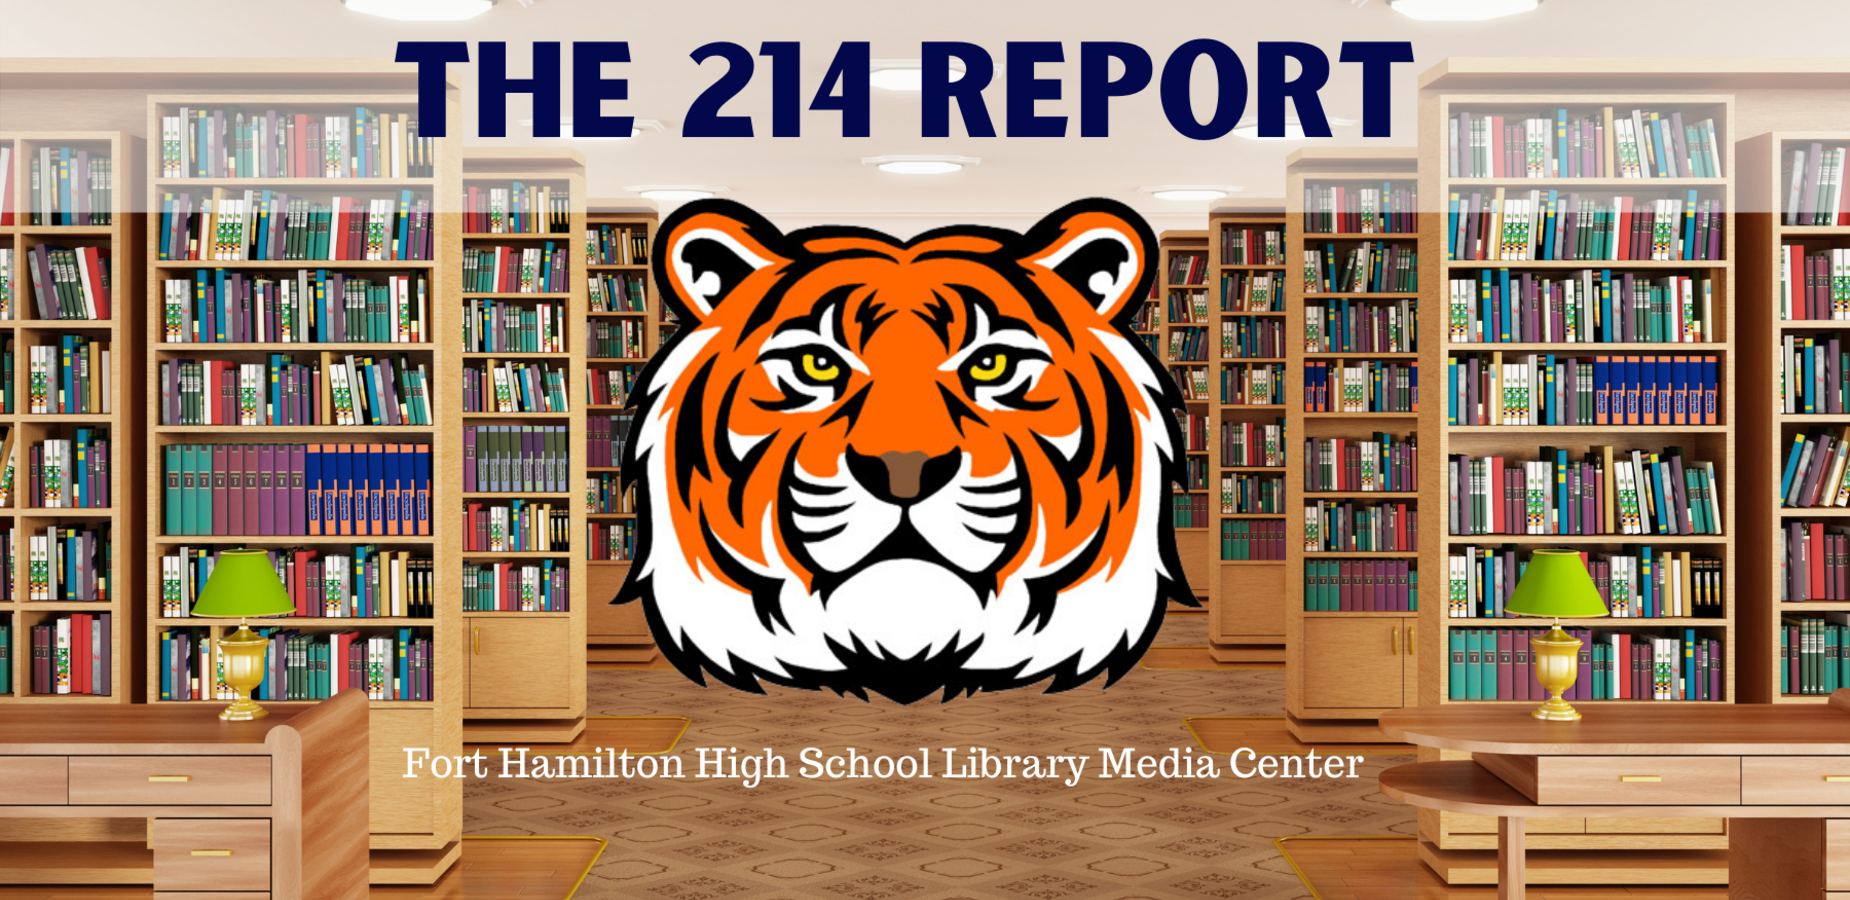 The 214 Report. Fort Hamilton High School Library Media Center June 2021. A library with the FHHS Tiger head in the center.